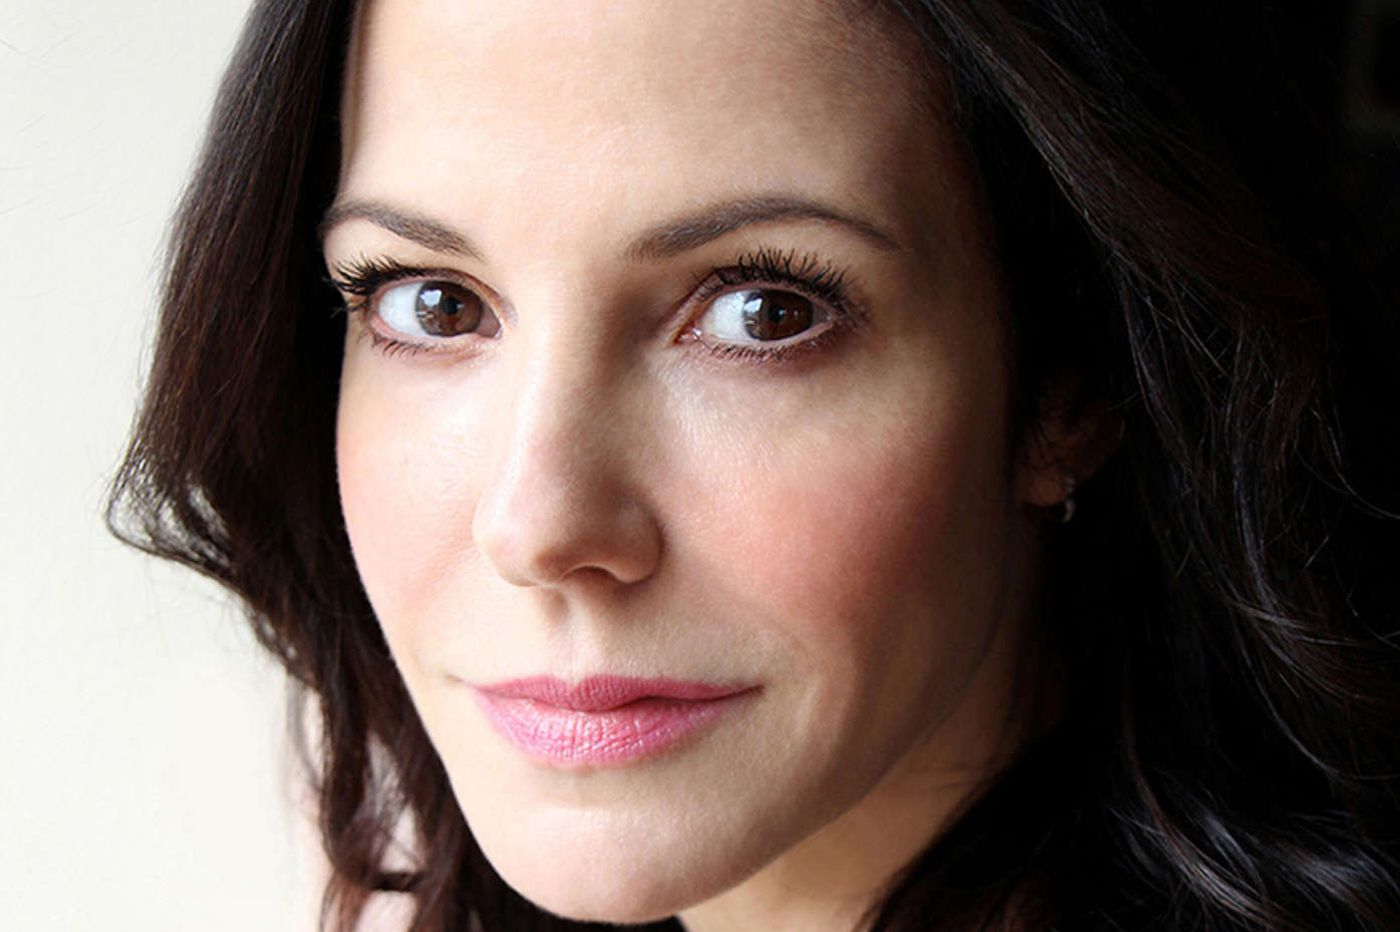 On Broadway now: Mary-Louise Parker, Marisa Tomei, and hot plays without huge stars